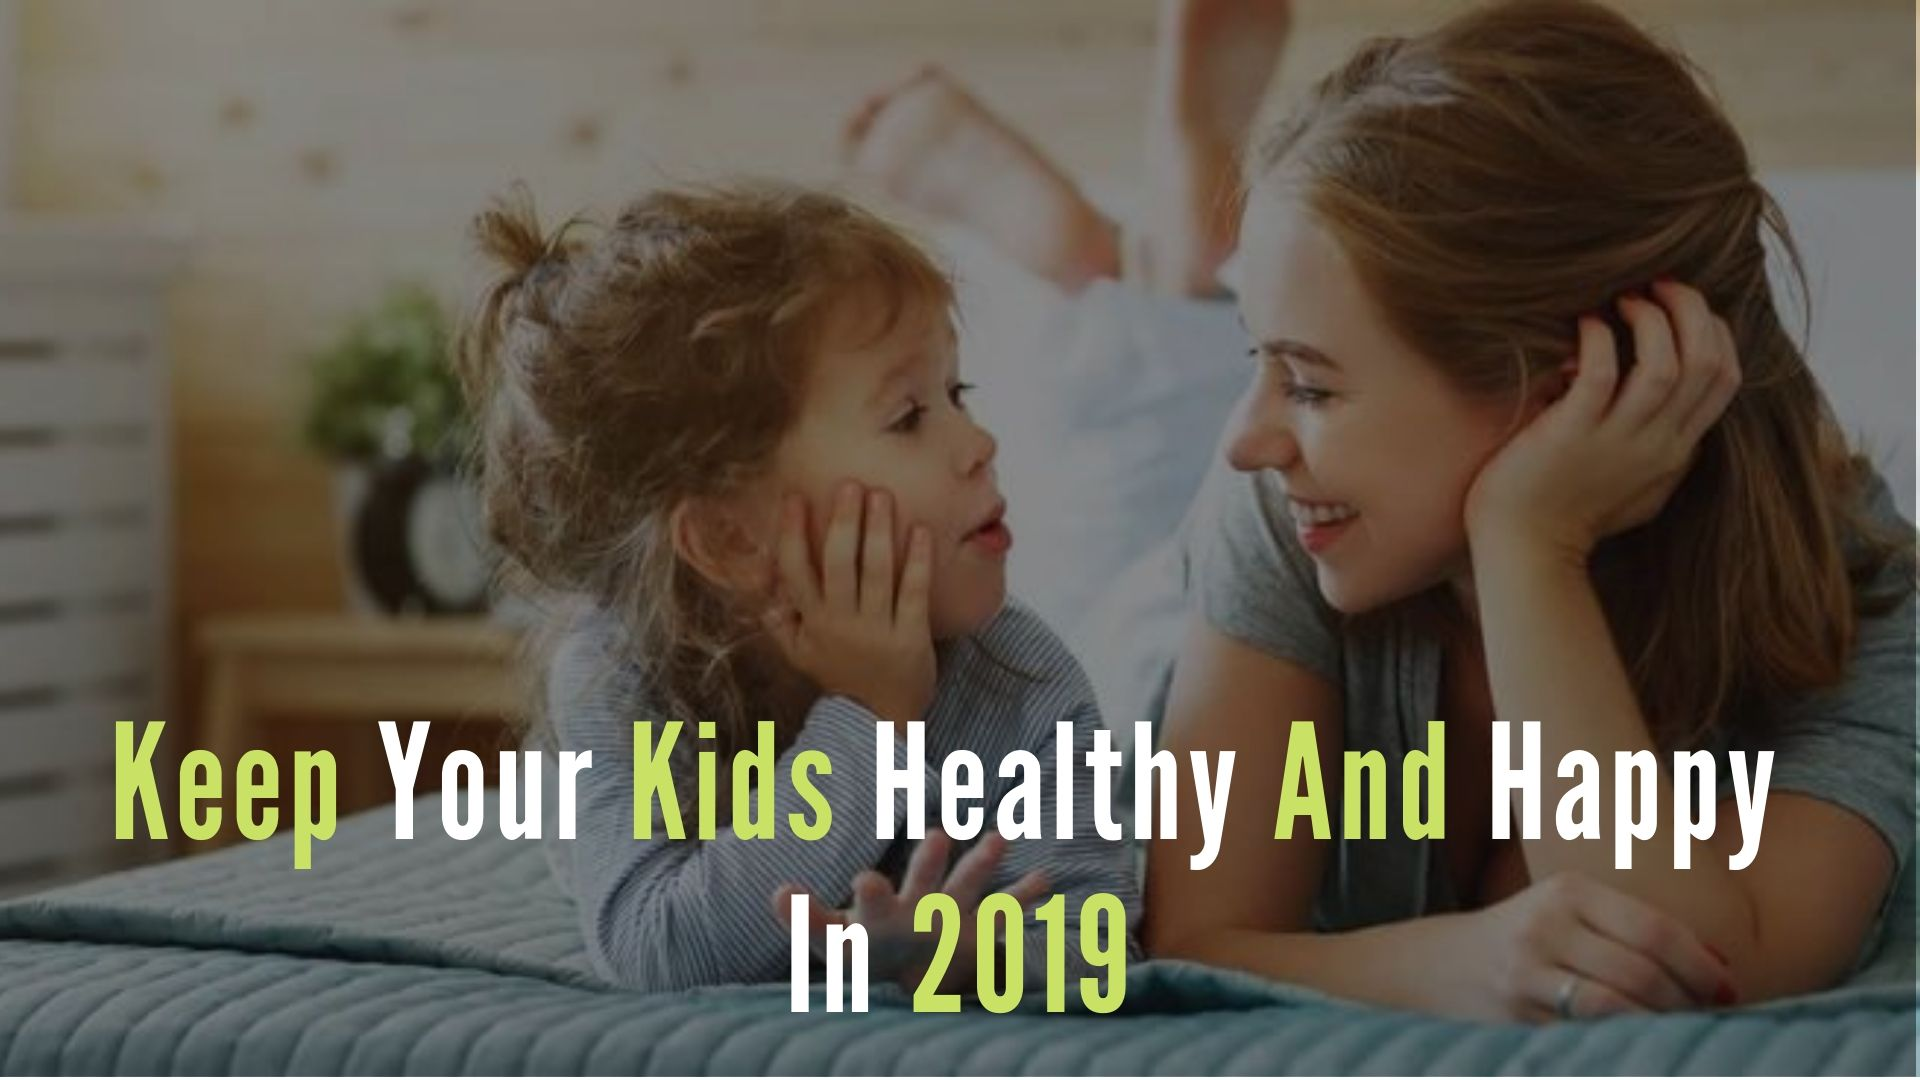 12 Ways to Keep Your Kids Healthy and Happy in 2019